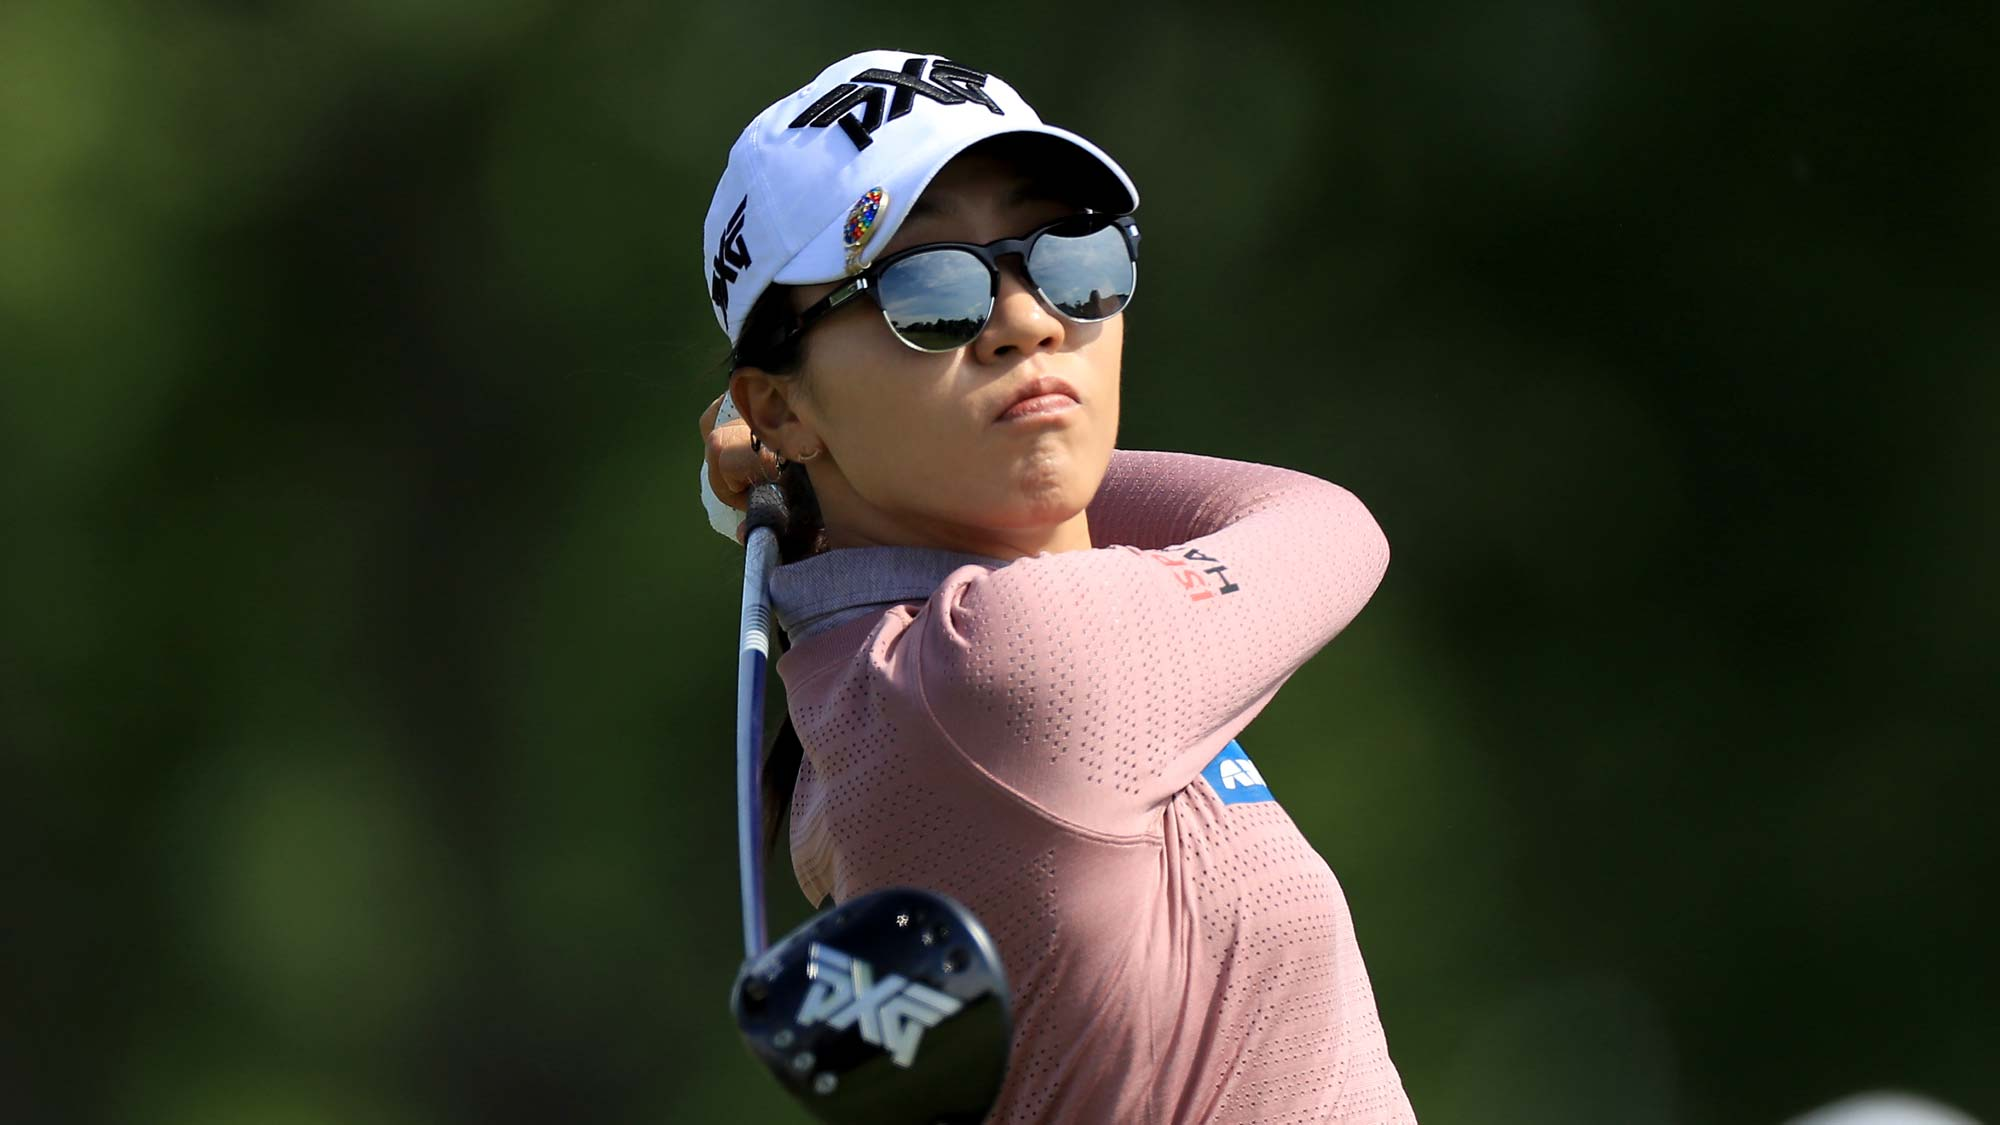 Lydia Ko of New Zealand plays her tee shot on the par 4, 12th hole during the first round of the 2019 KPMG Women's PGA Championship